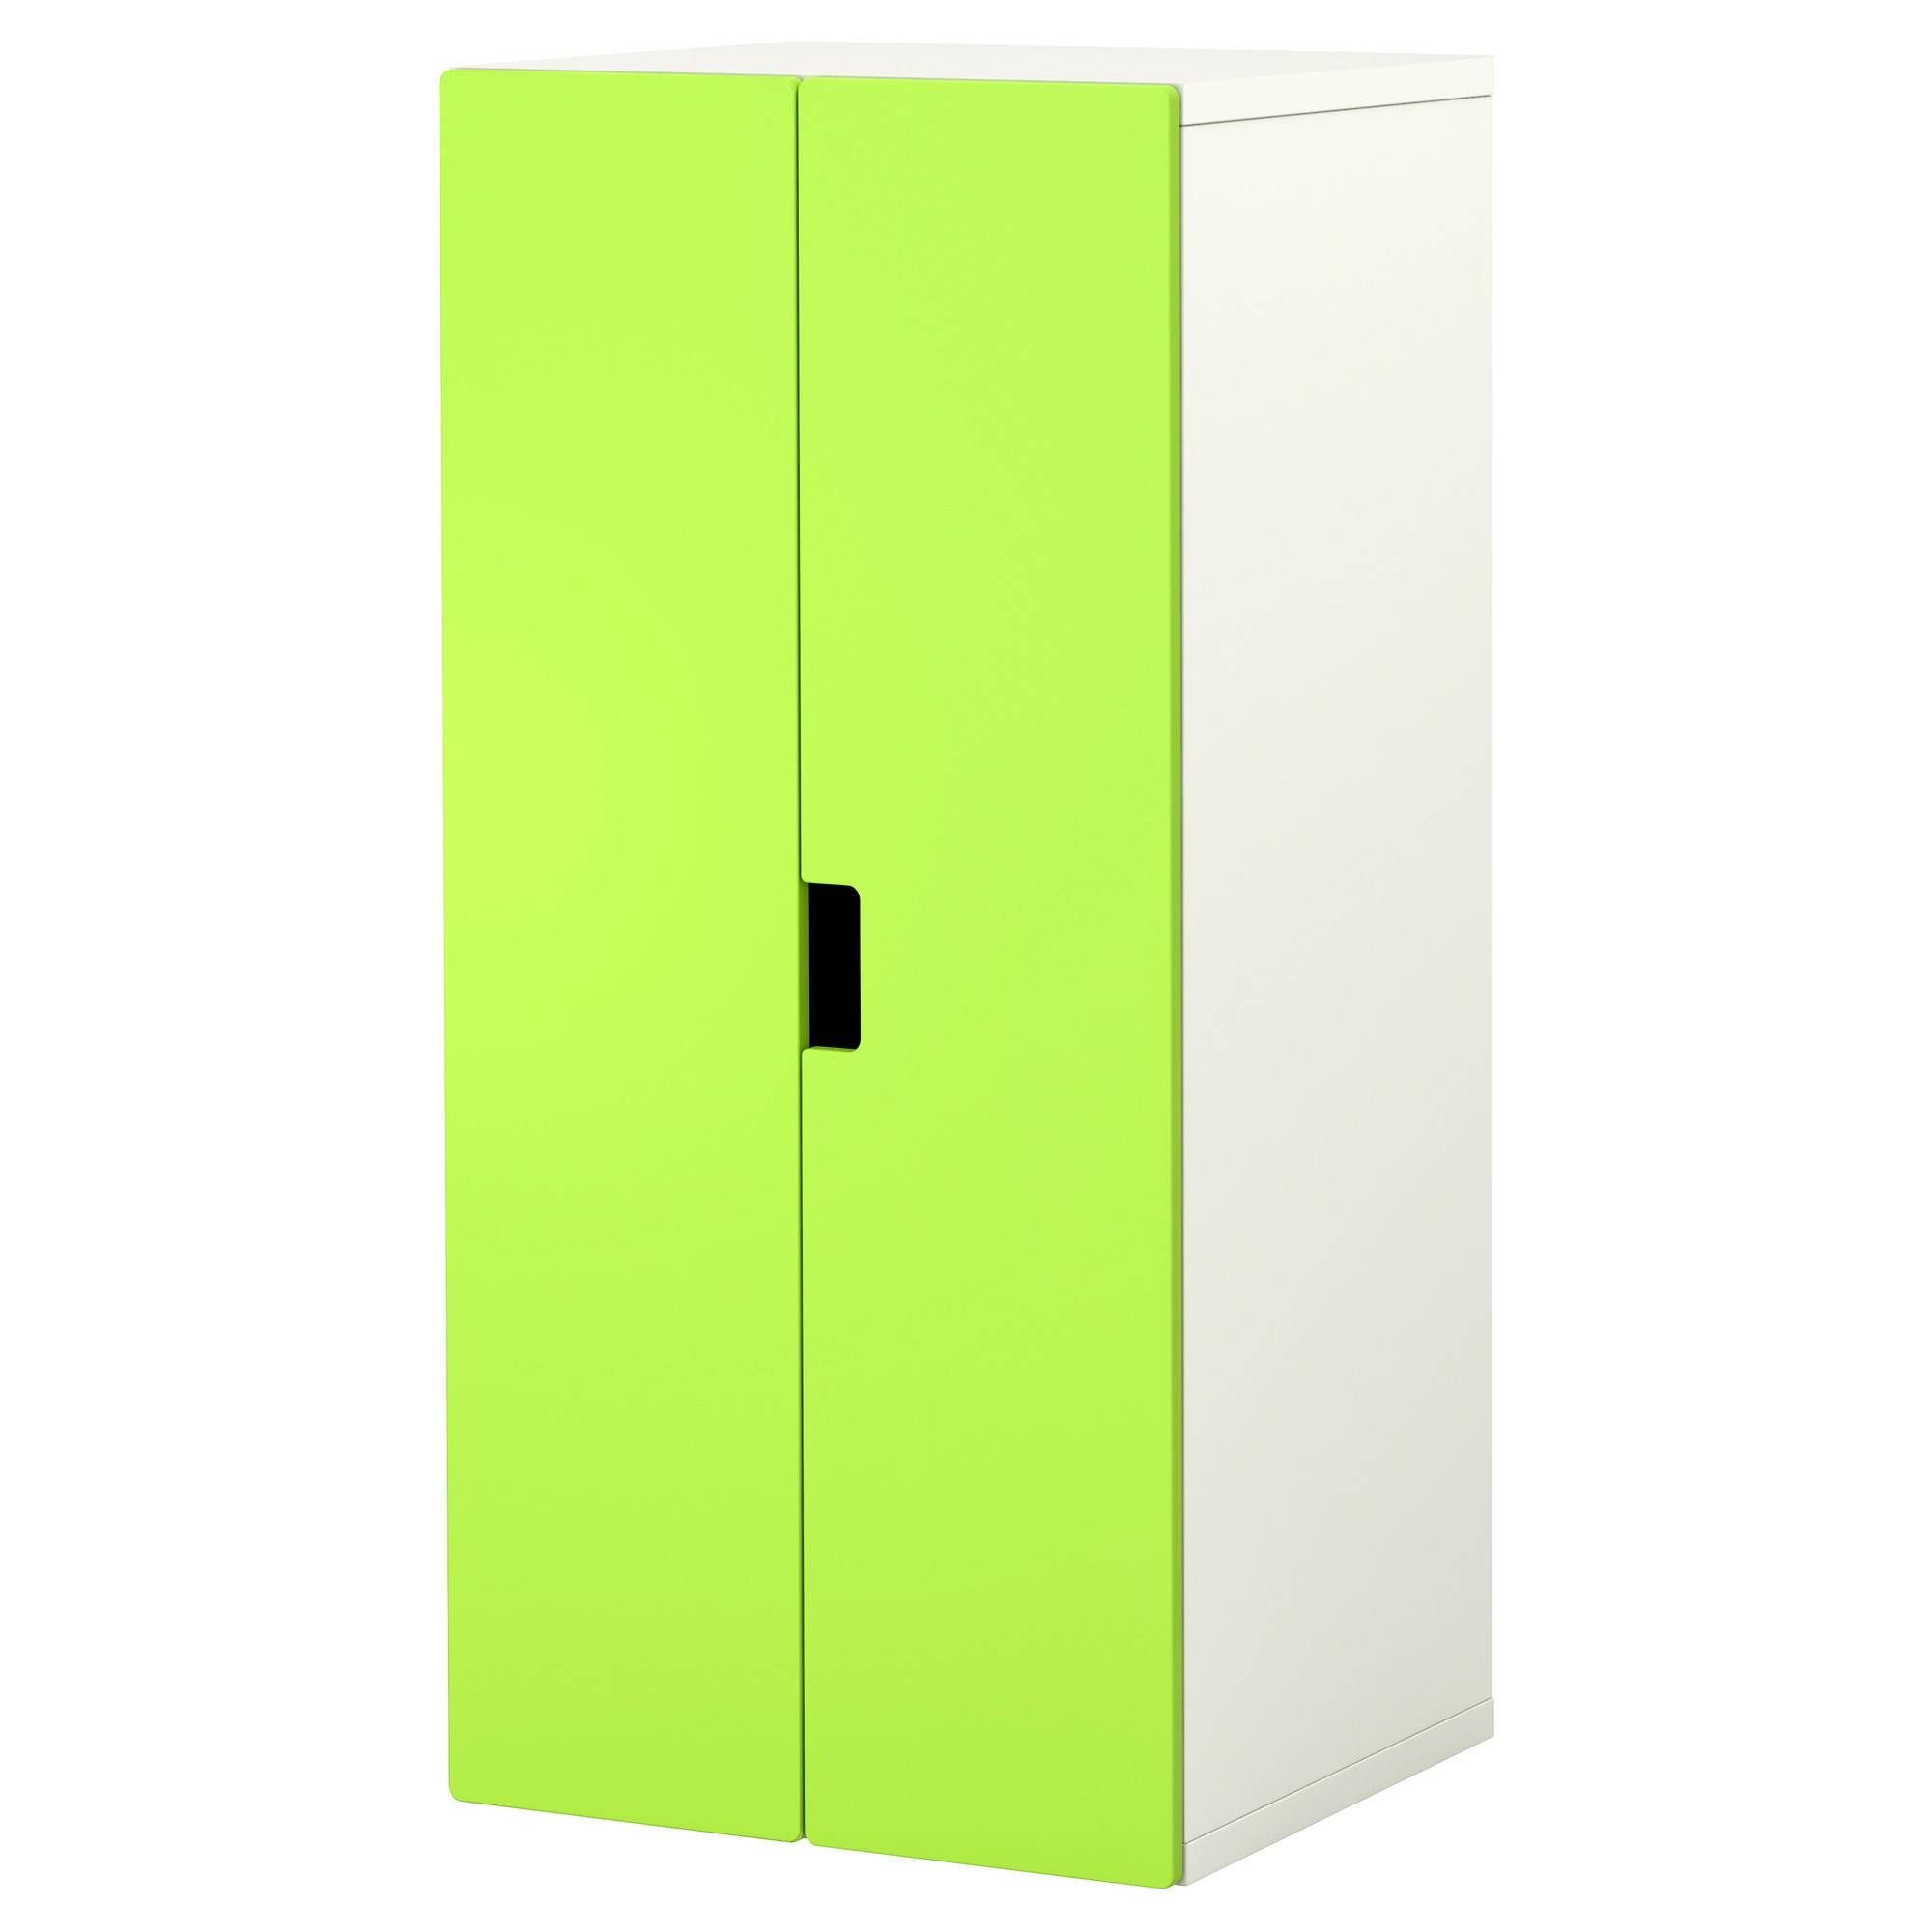 Stuva Storage Combination With Doors White/green 60X50X128 Cm - Ikea intended for Kids Wardrobes (Image 13 of 15)